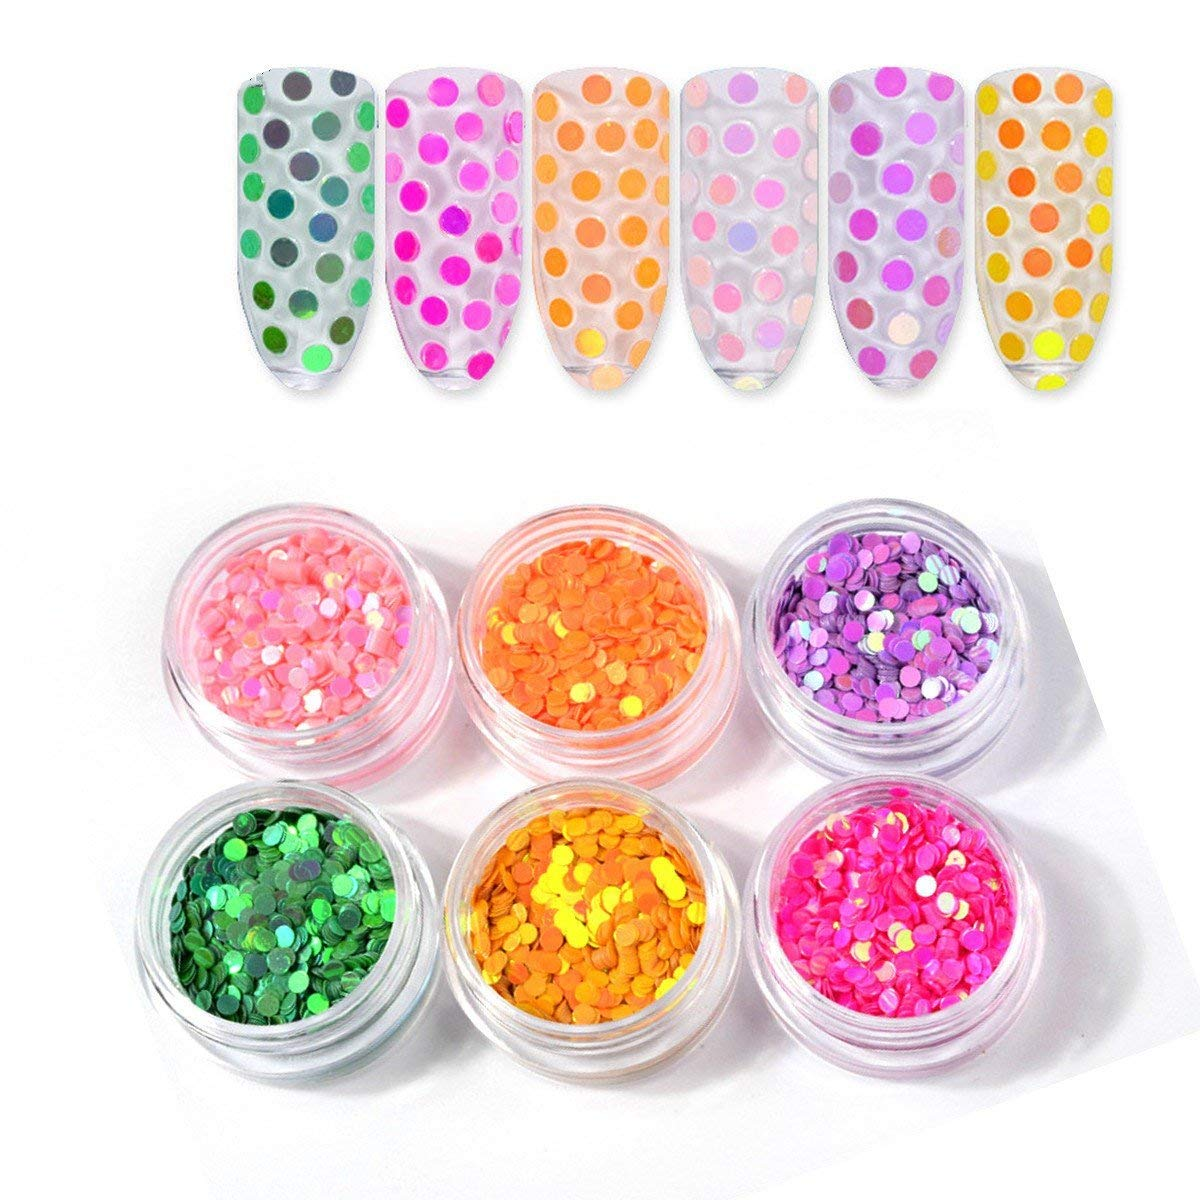 Mezerdoo 6pc/lot Candy Round Nail Sequins Paillette Glitter for Nails Art Manicure 3D Decoration Colorful Nail Beads Sweet Round Glitters